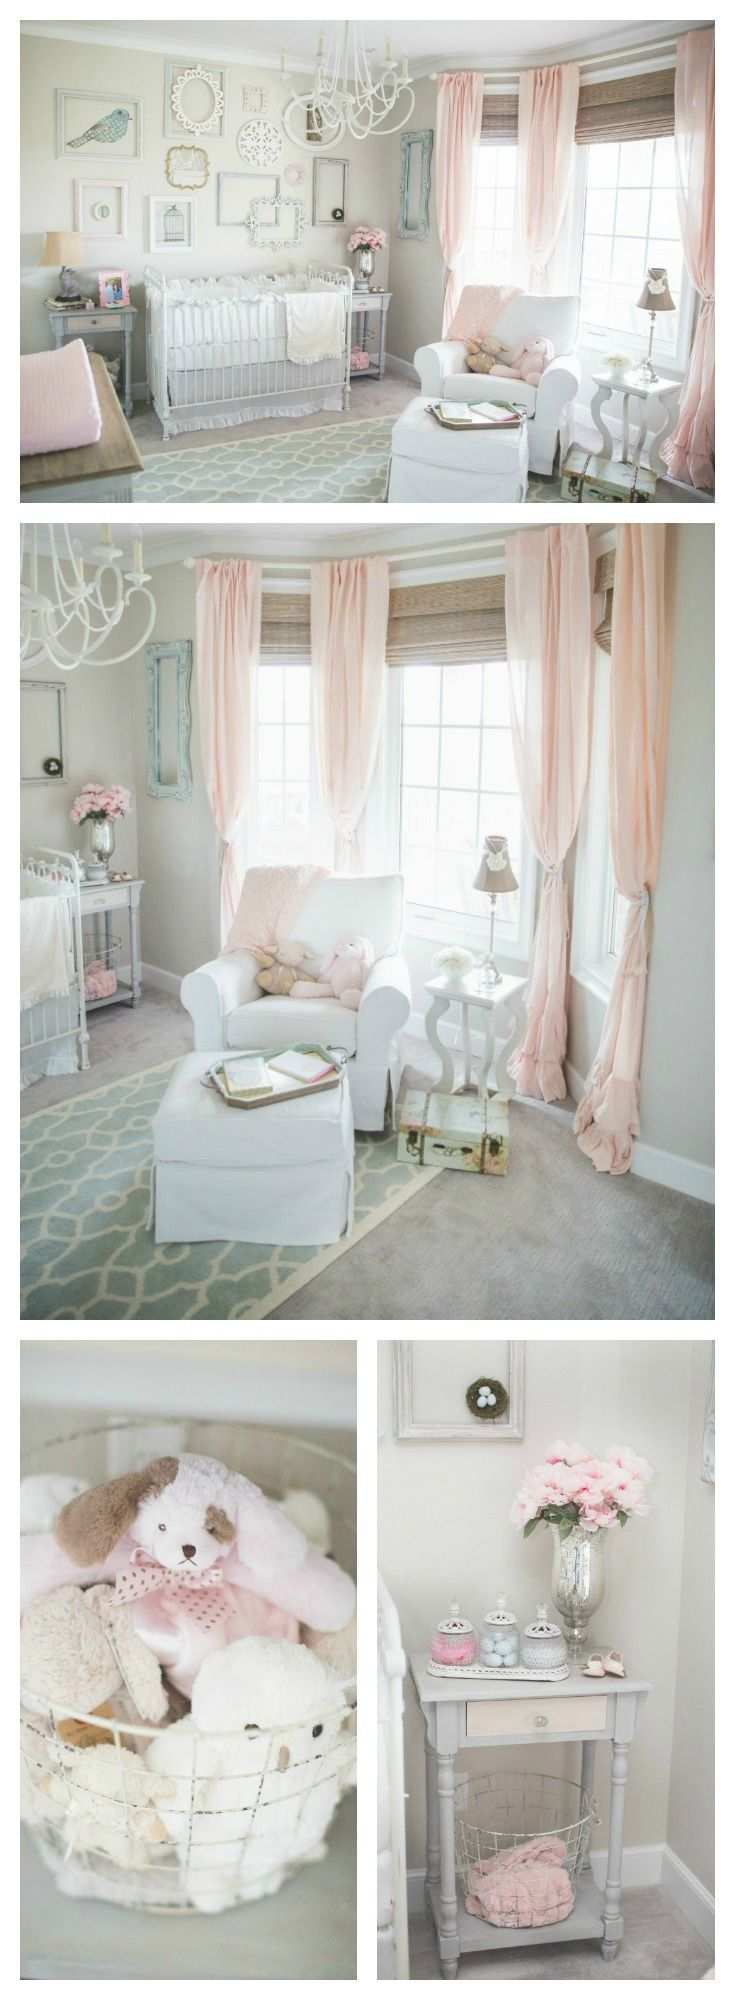 Best 25+ Babies Rooms Ideas On Pinterest | Babies Nursery, Nursery And  Future Baby